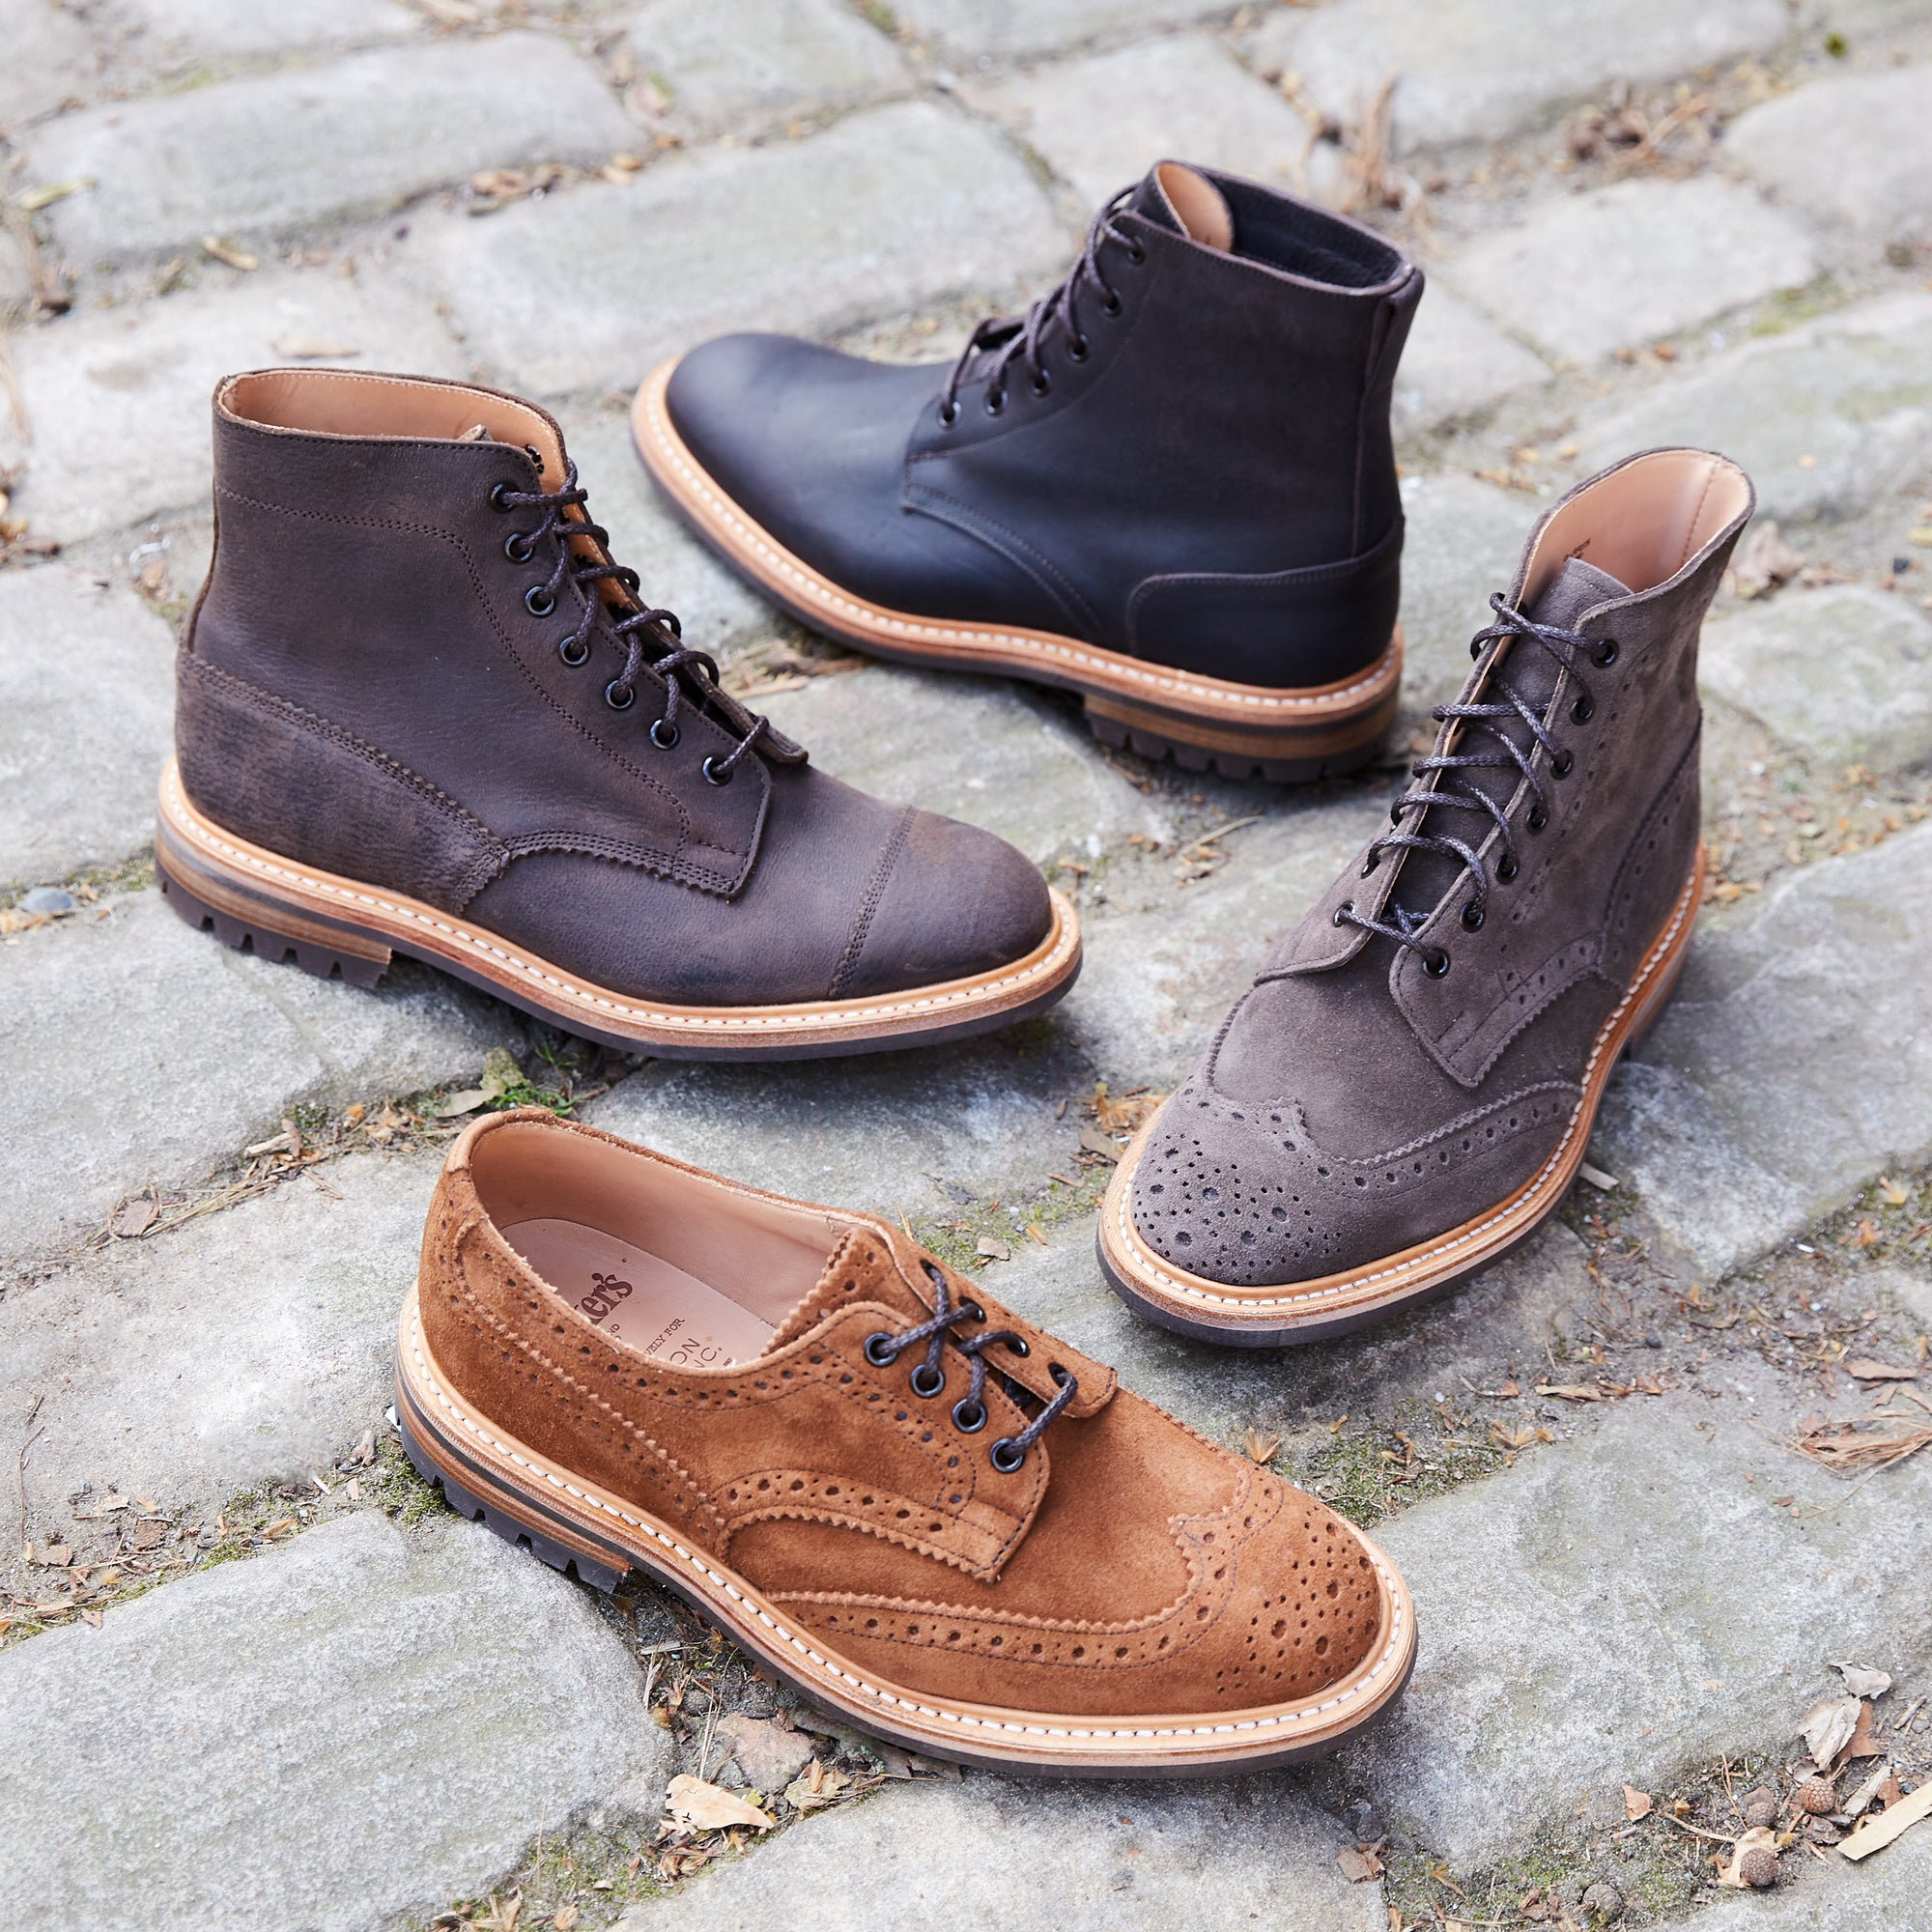 Division Road Tricker's x DR Core Exclusive Restock